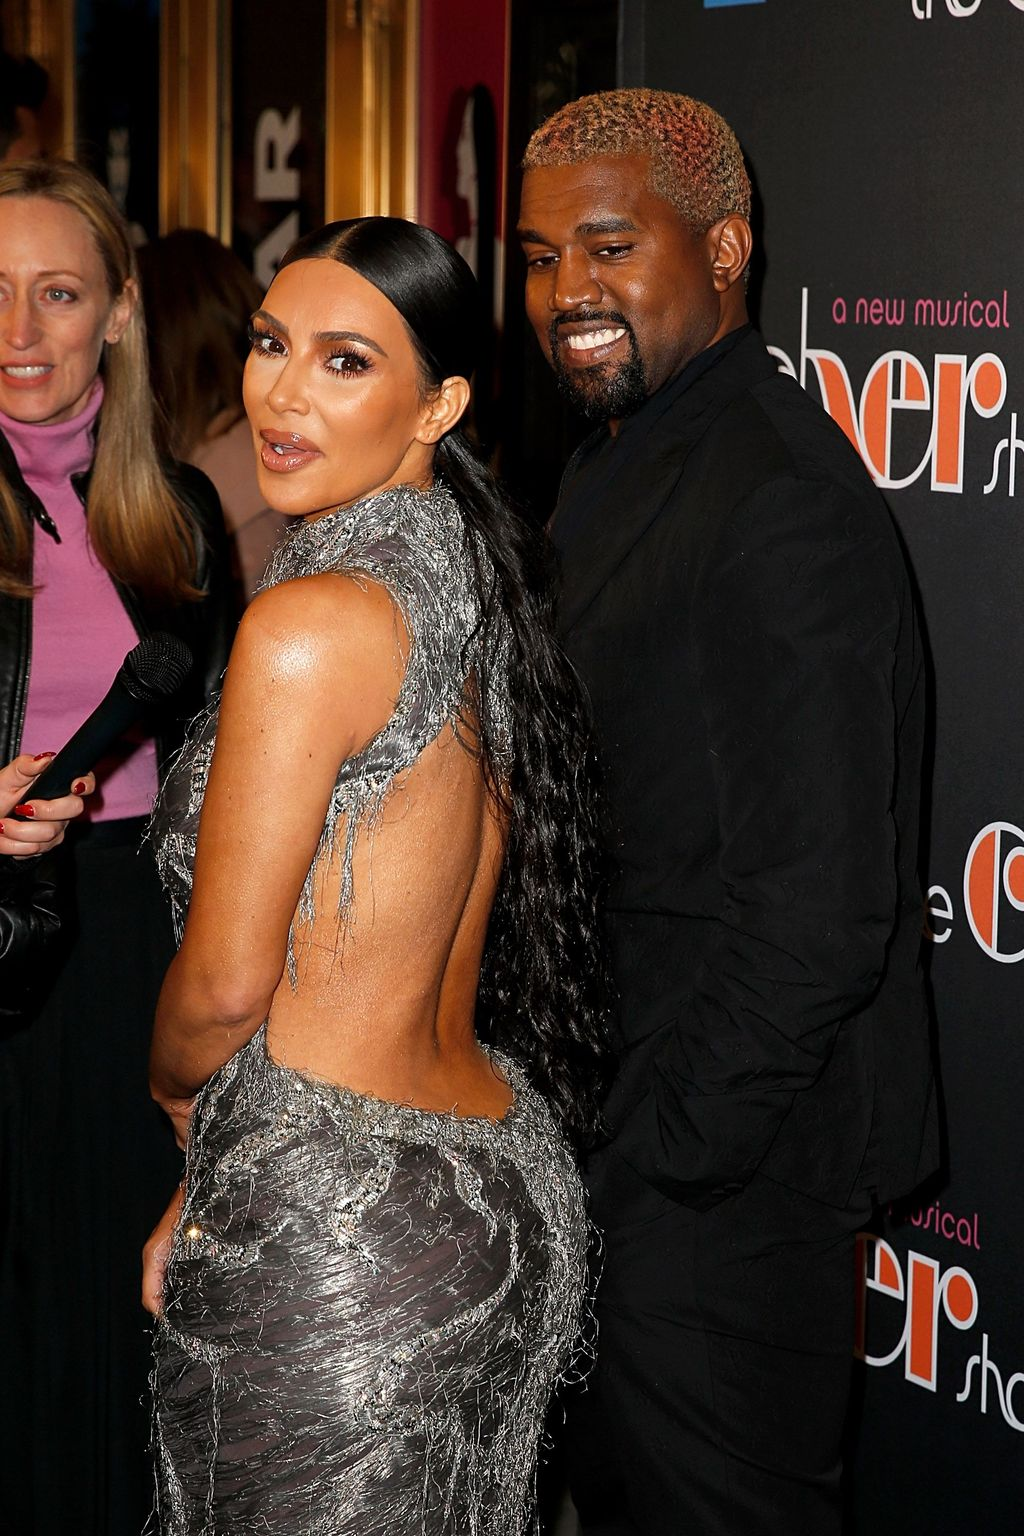 NEW YORK, NEW YORK - DECEMBER 03:  Kanye West and Kim Kardashian West attend the opening night of the new musical 'The Cher Show' on Broadway at Neil Simon Theatre on December 03, 2018 in New York City. (Photo by Dominik Bindl/Getty Images)